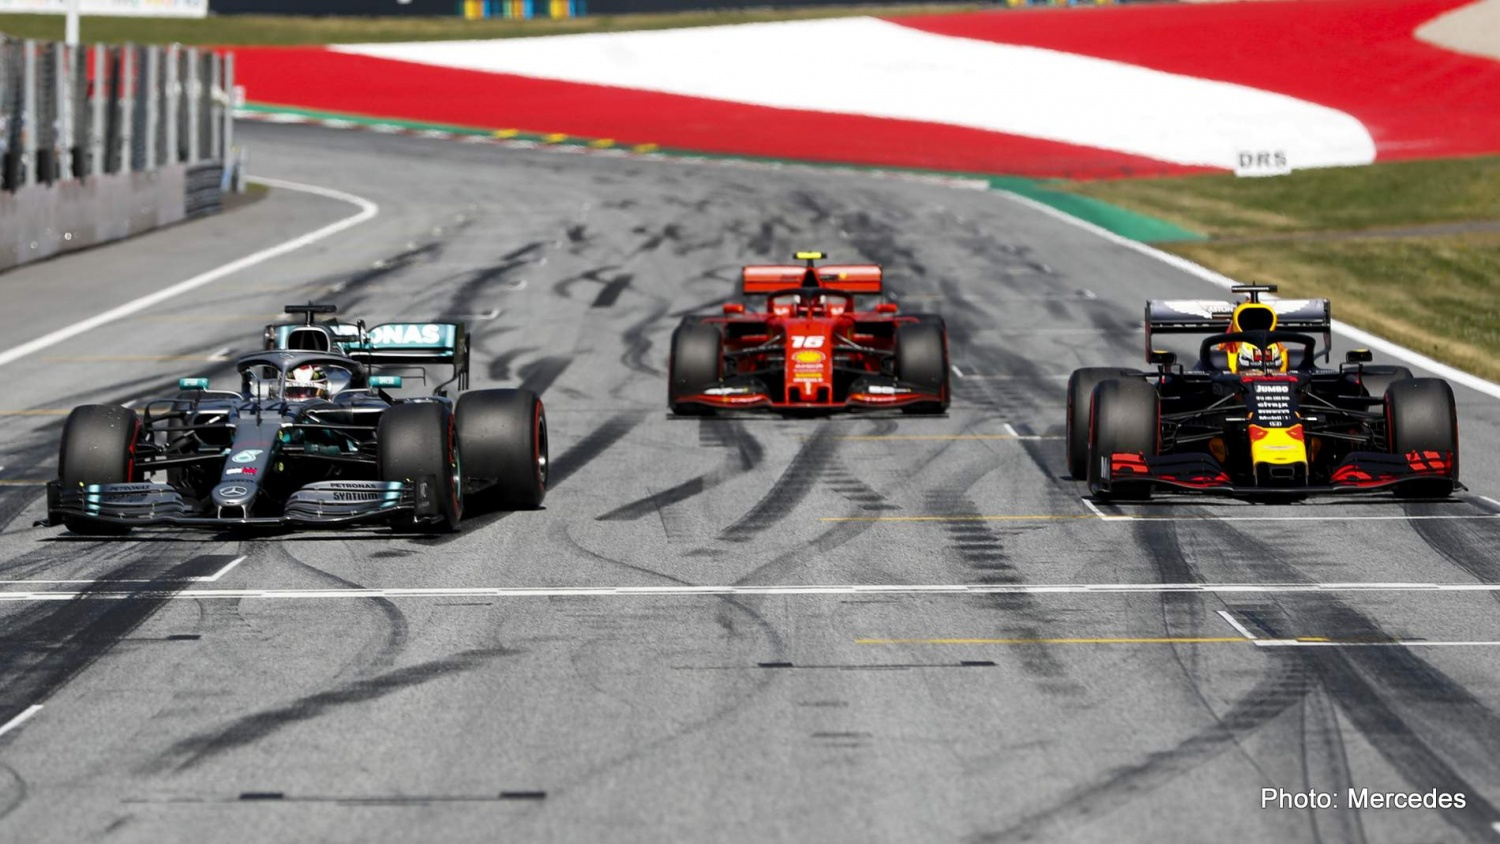 2020 Formula 1 Season Build-up: Lewis vs. Max vs. Charles